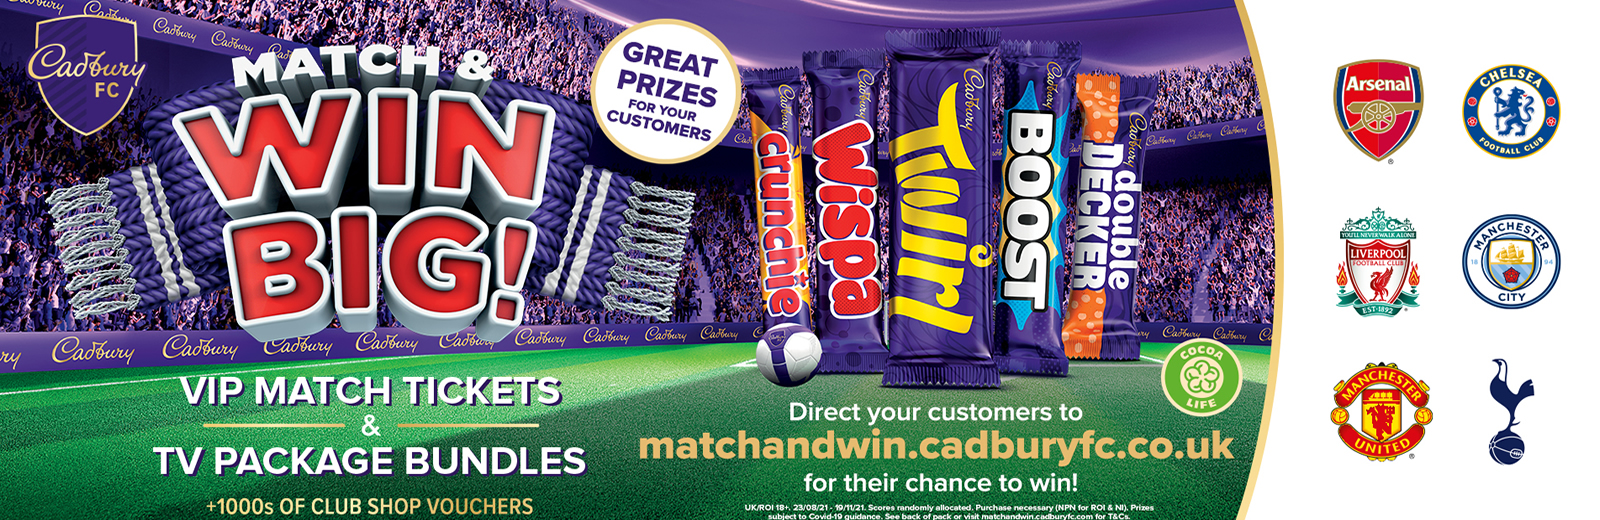 6468698 Match & Win Buying Groups Digital & Print Adverts_WEB BANNERS_SINGLES V2-Twitter Image - 1200 x 675px